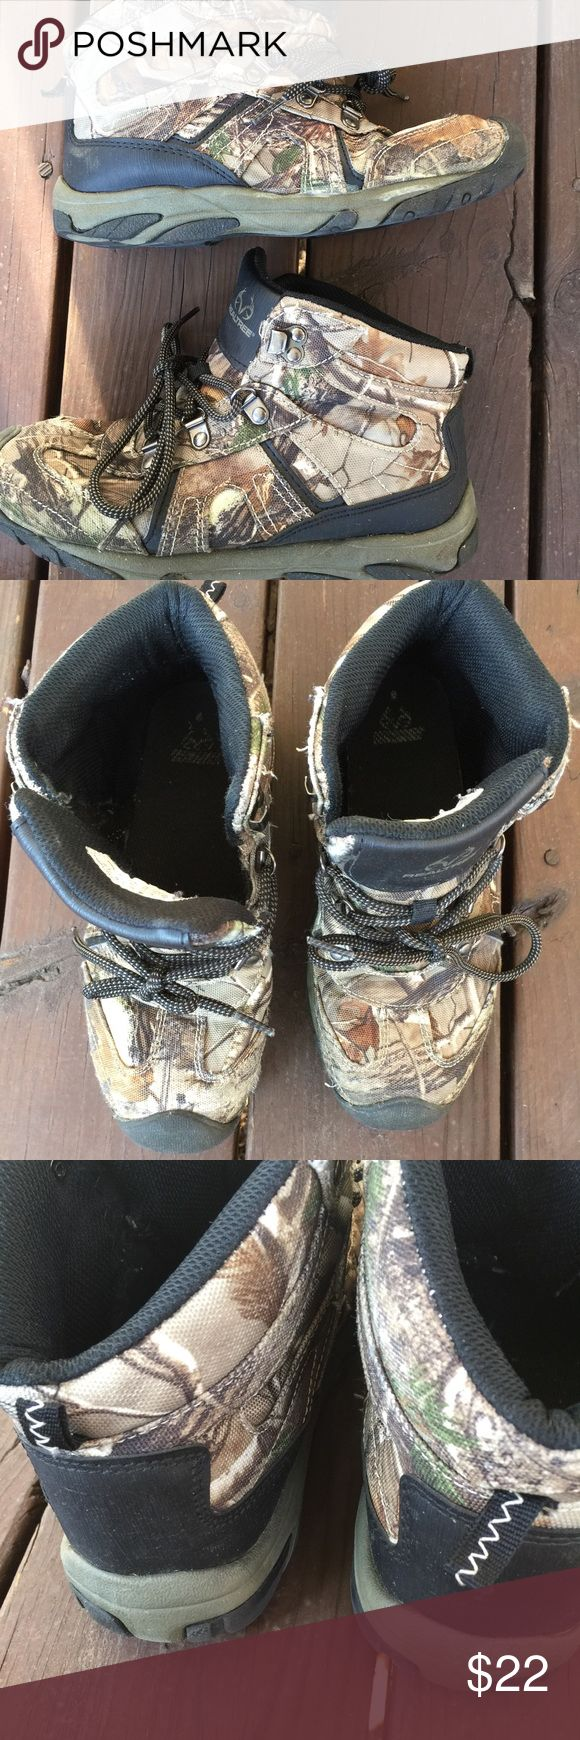 Real tree Camouflage shoes boys size 5. Real tree Camouflage shoes boys size 5. These are made like high top tennis shoes/boots. They are preowned but worn very little. They are in great shape. Please view all pictures. Realtree Shoes Boots